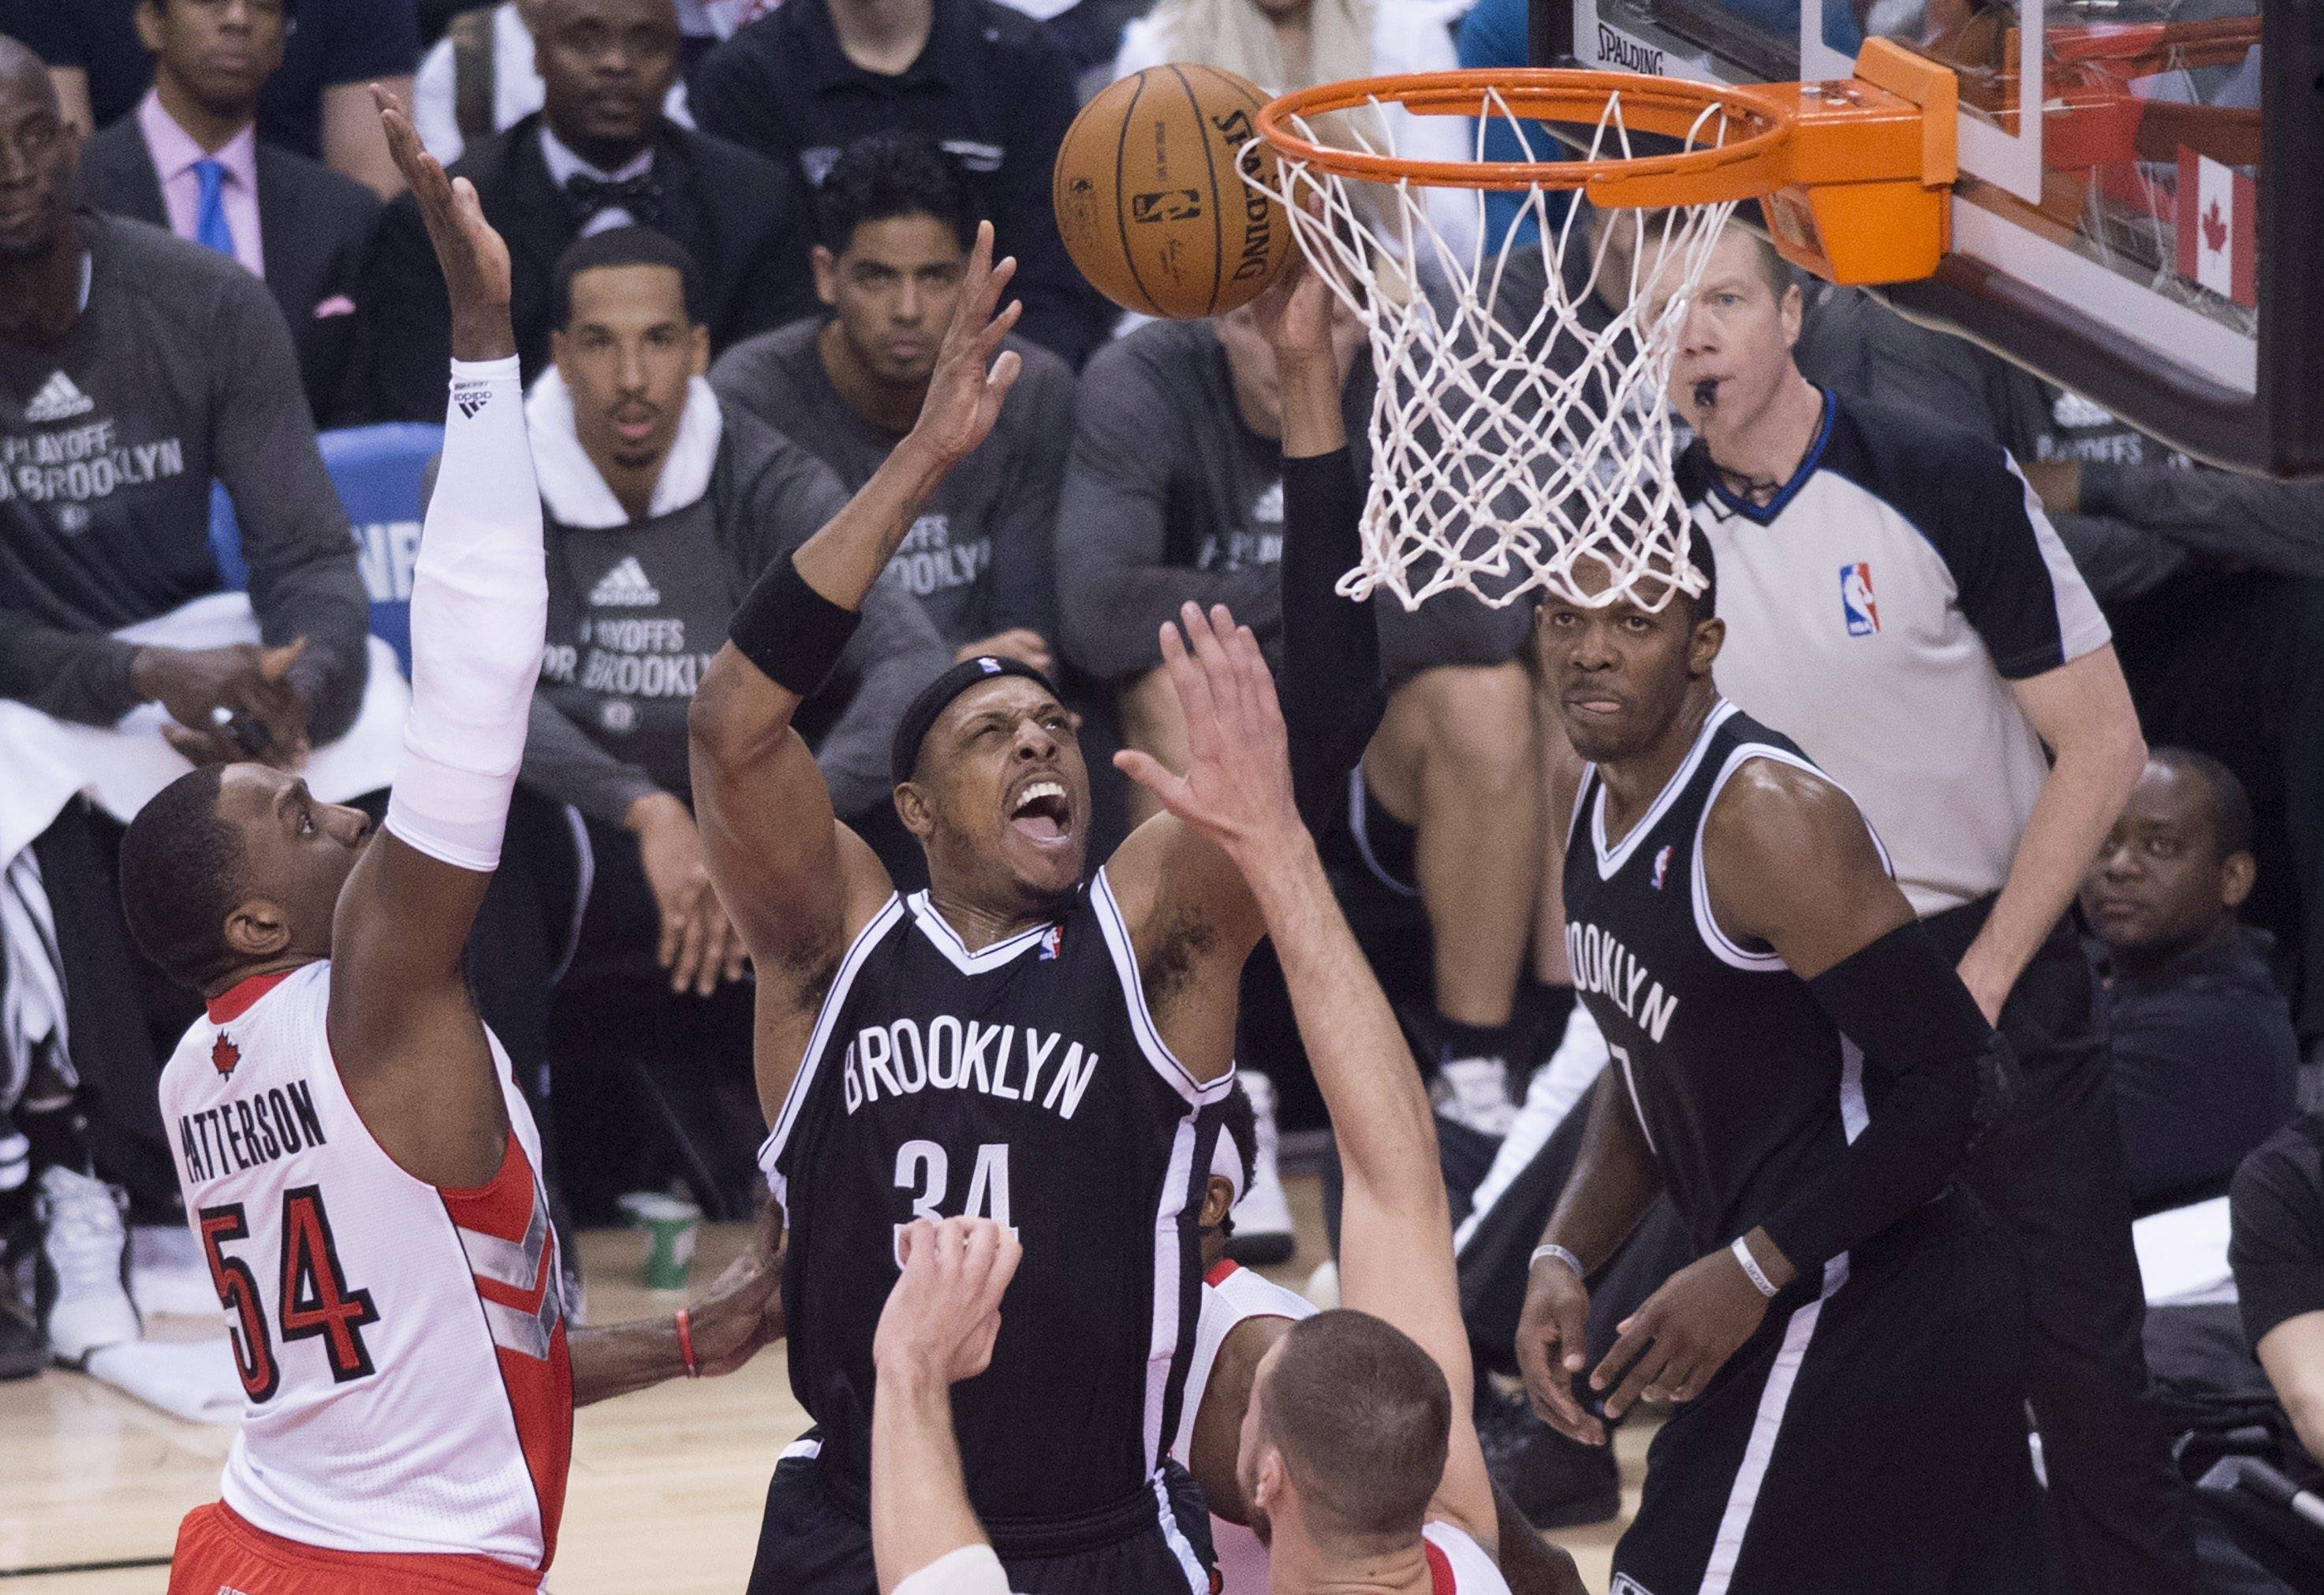 The Brooklyn Nets' Paul Pierce, center, drives to the net against Toronto Raptors Patrick Patterson, left, during Saturday's Game 1 of an opening-round NBA basketball playoff series, in Toronto.